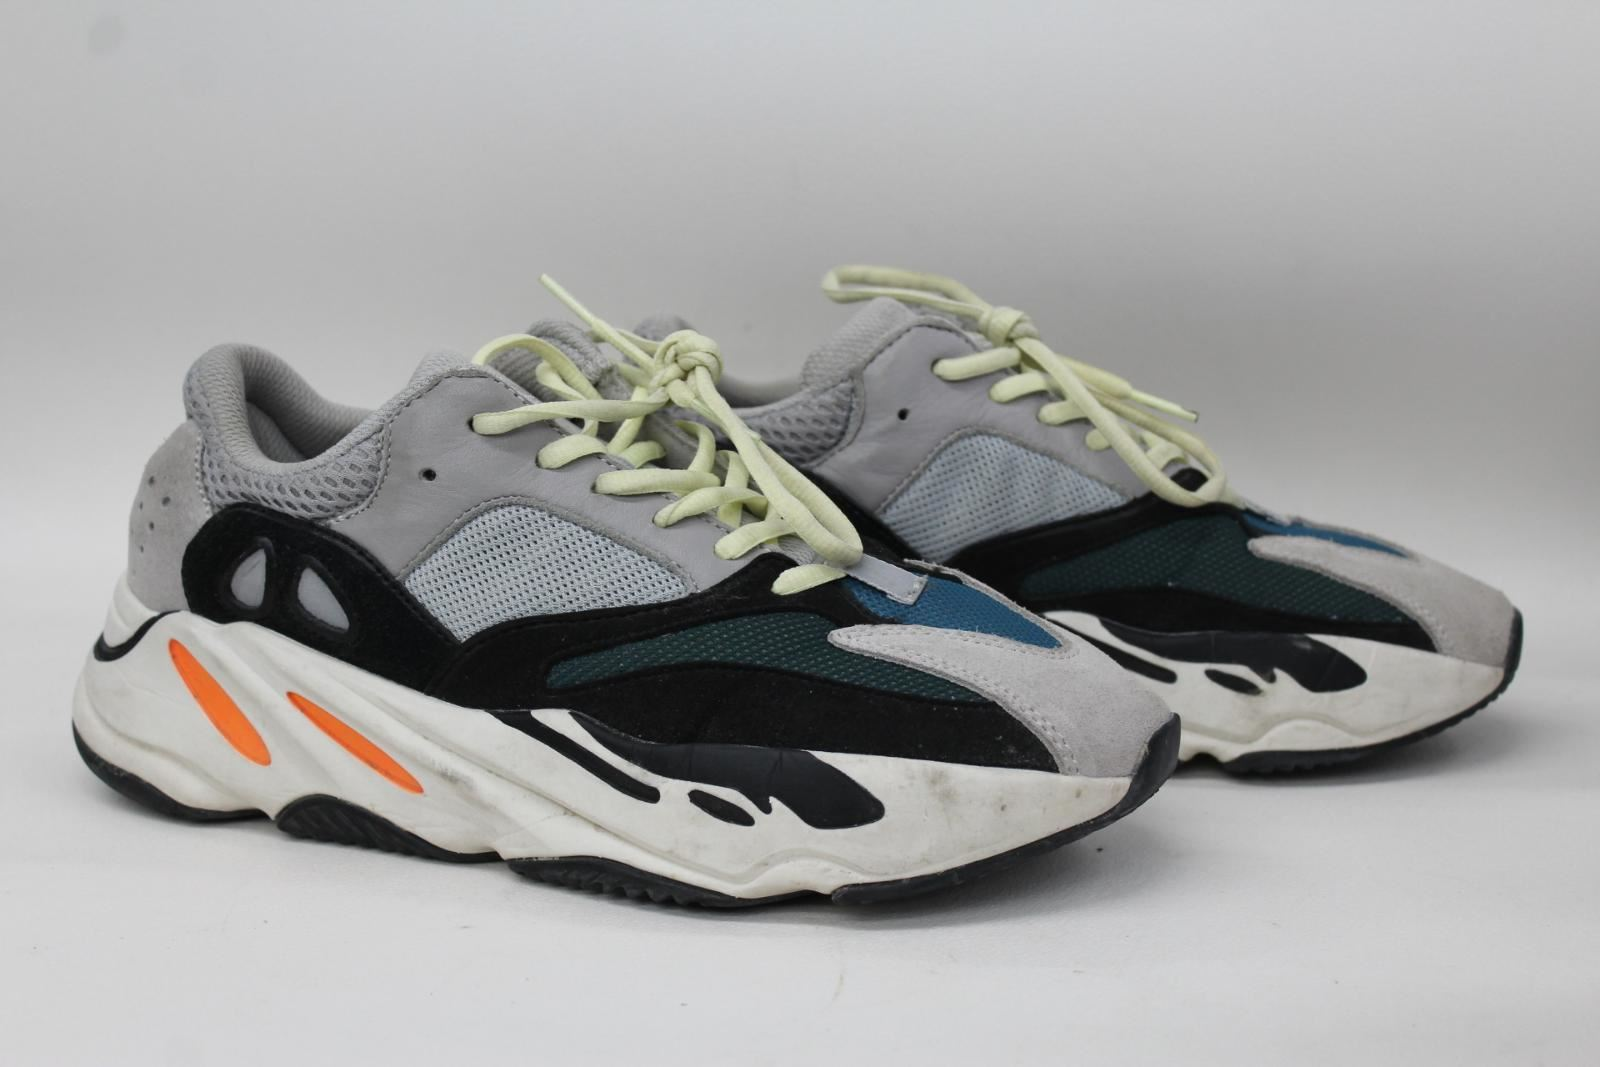 9ec83424b3b ADIDAS Yeezy Boost 700 Wave Runner Men s Suede   Mesh Trainers UK7.5 EU41.